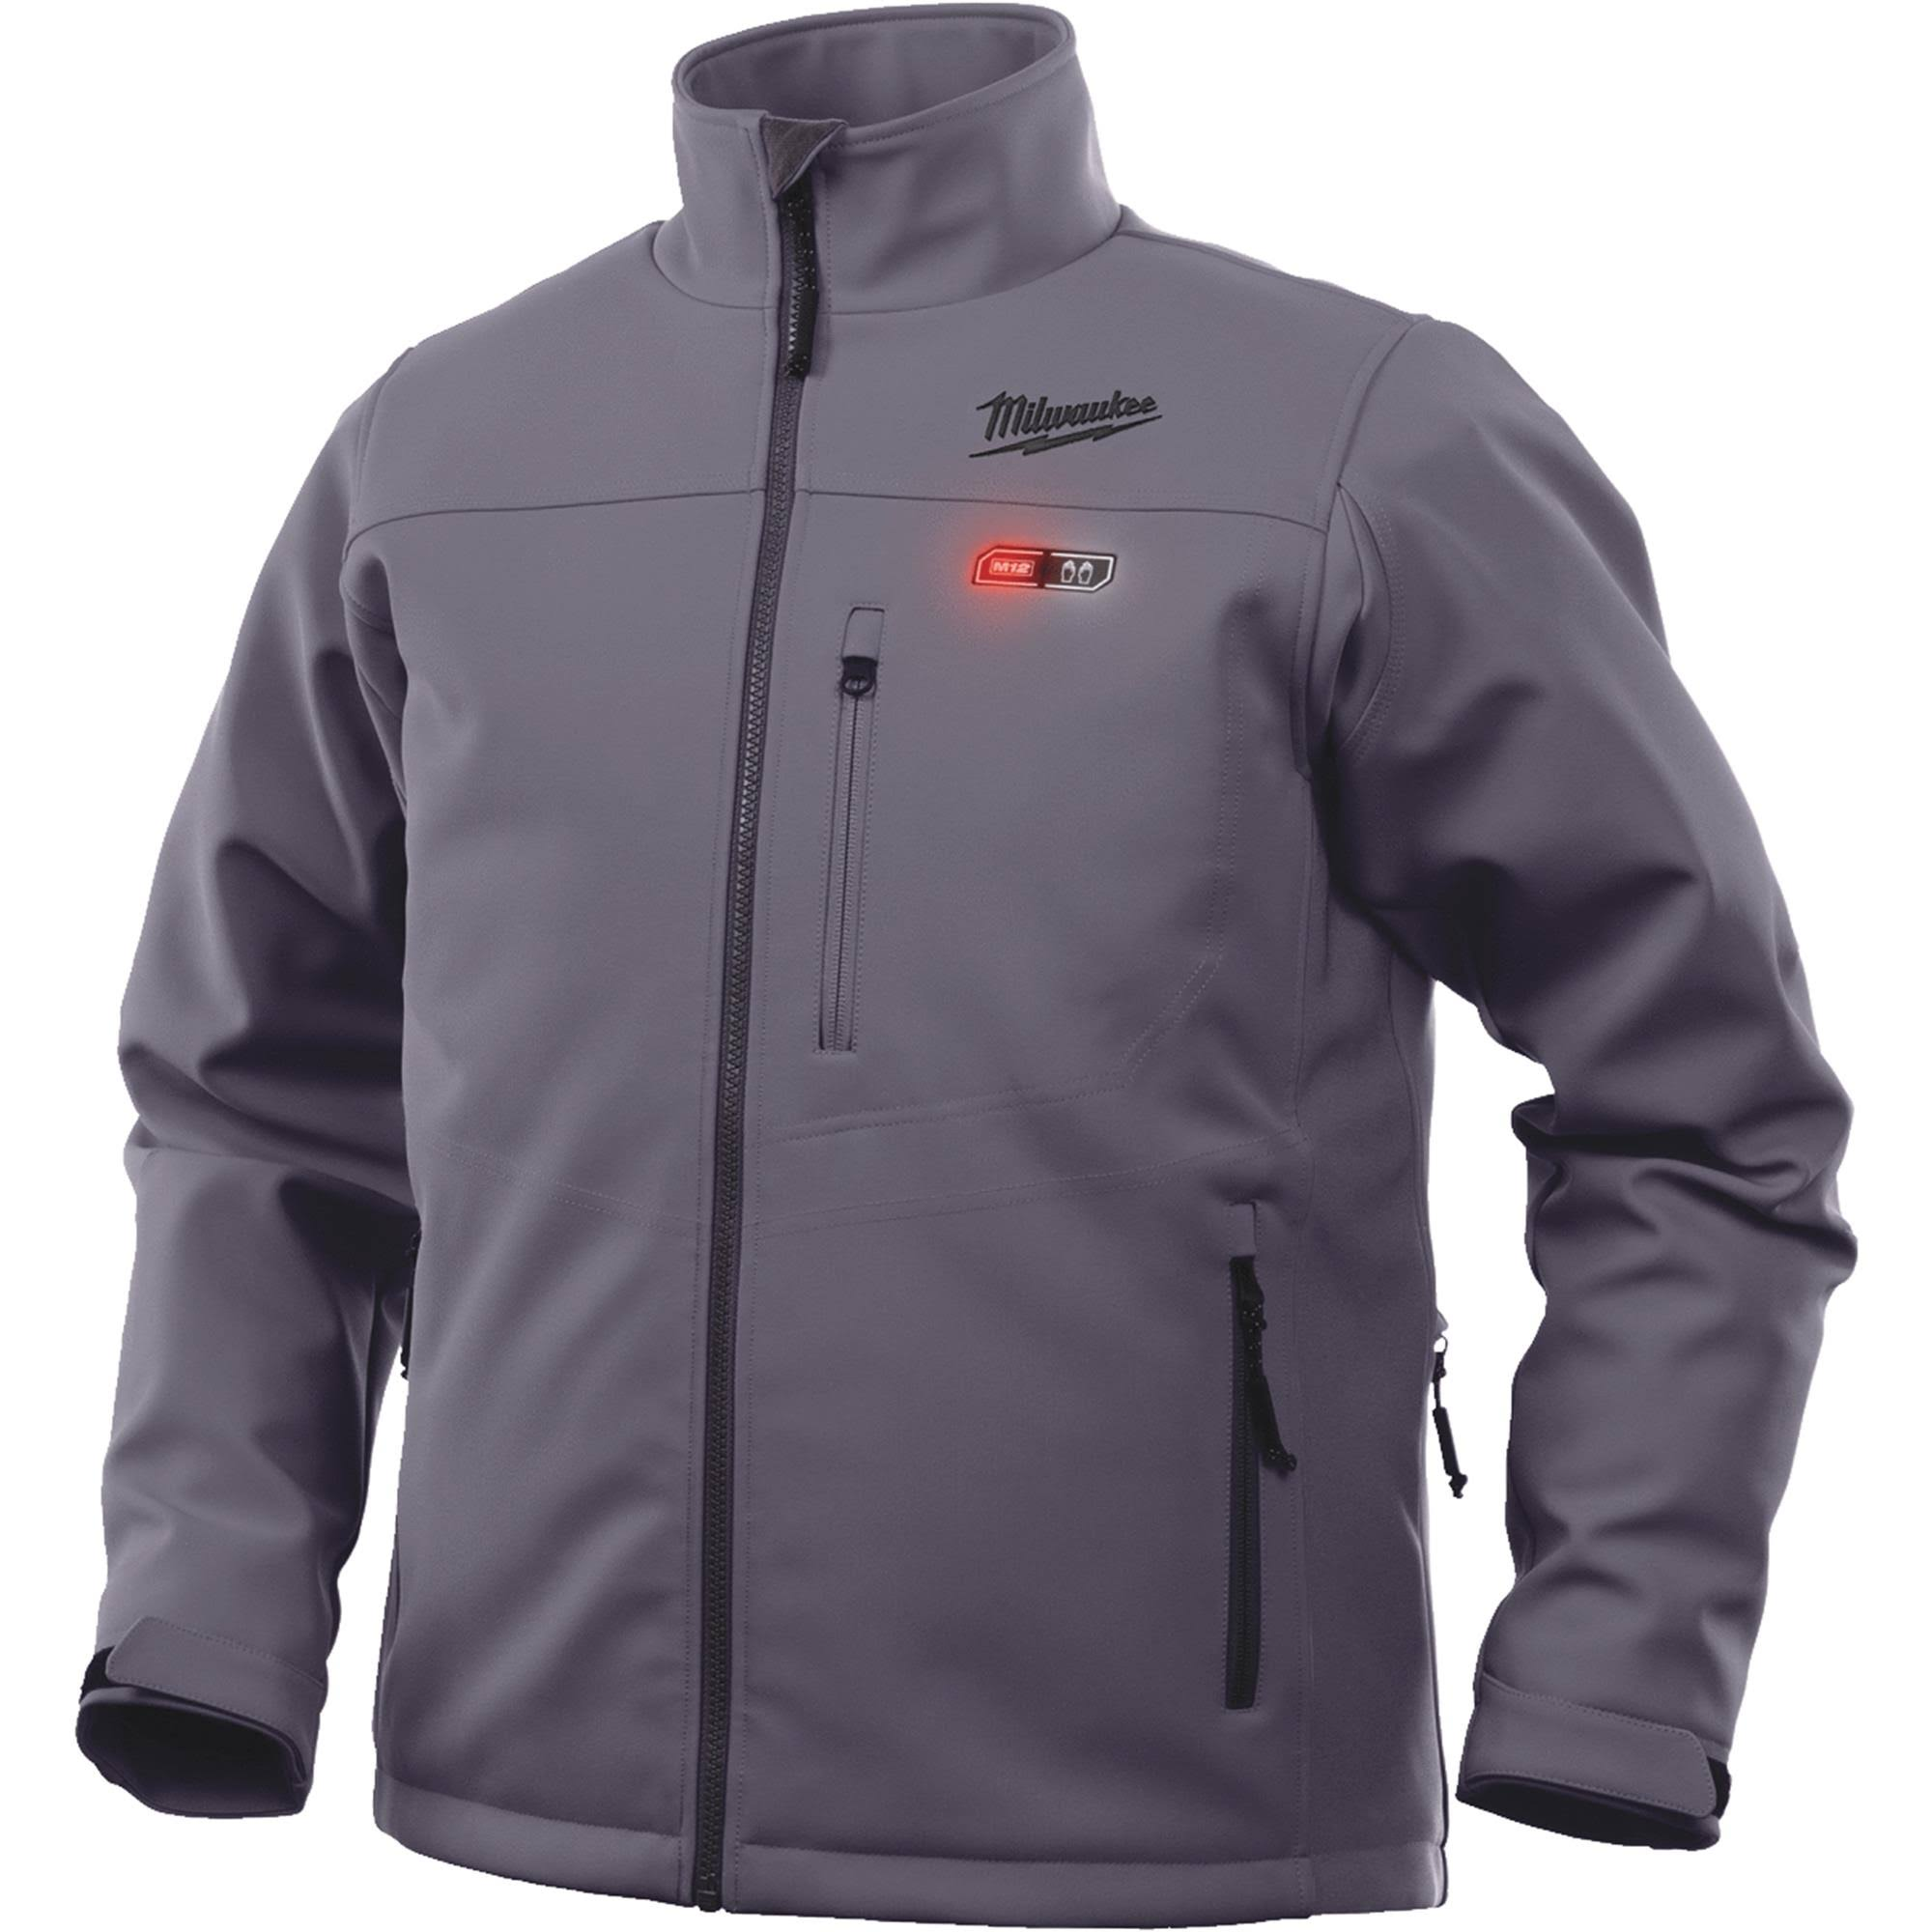 Milwaukee 201G-212X M12 Gray Heated Jacket Kit - 2XL